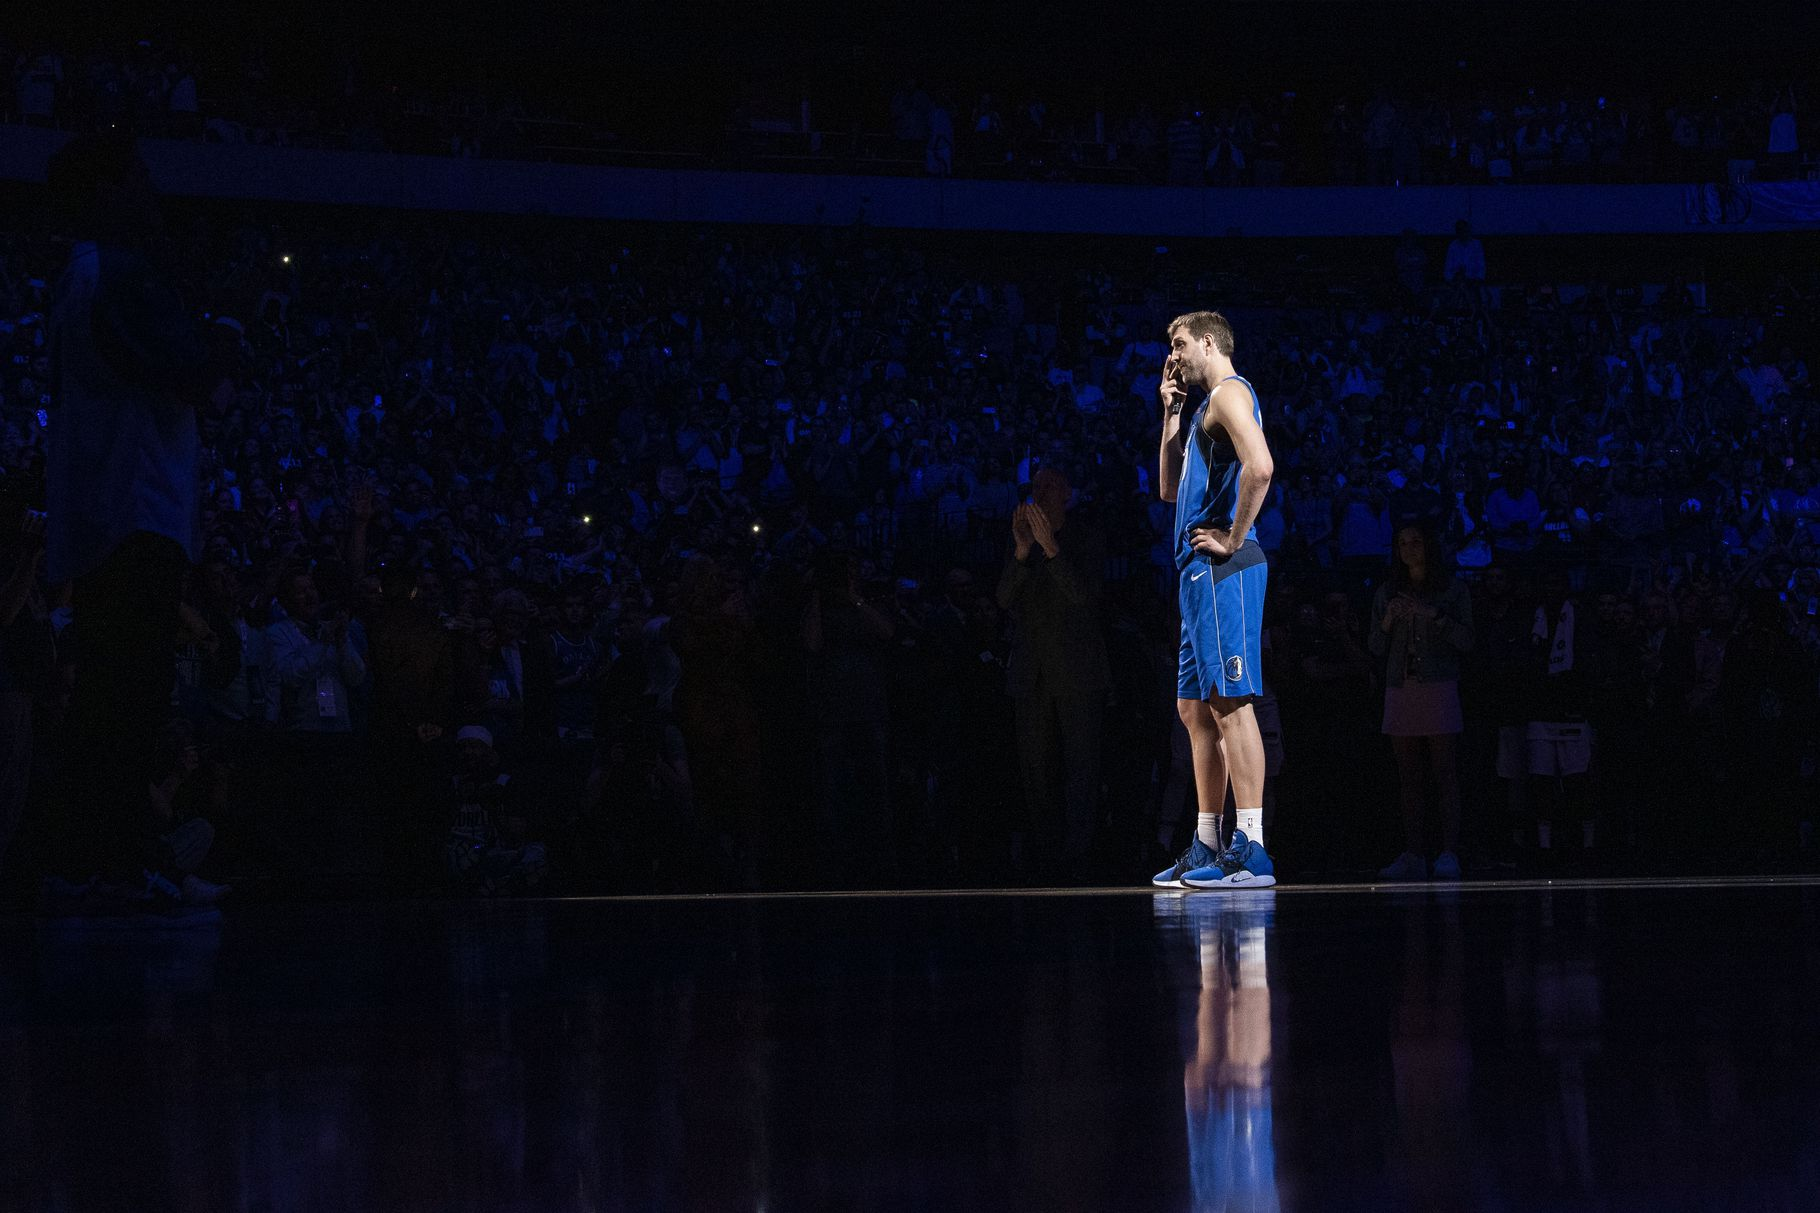 dirk nowitzki - 41.21.1. A CELEBRATION